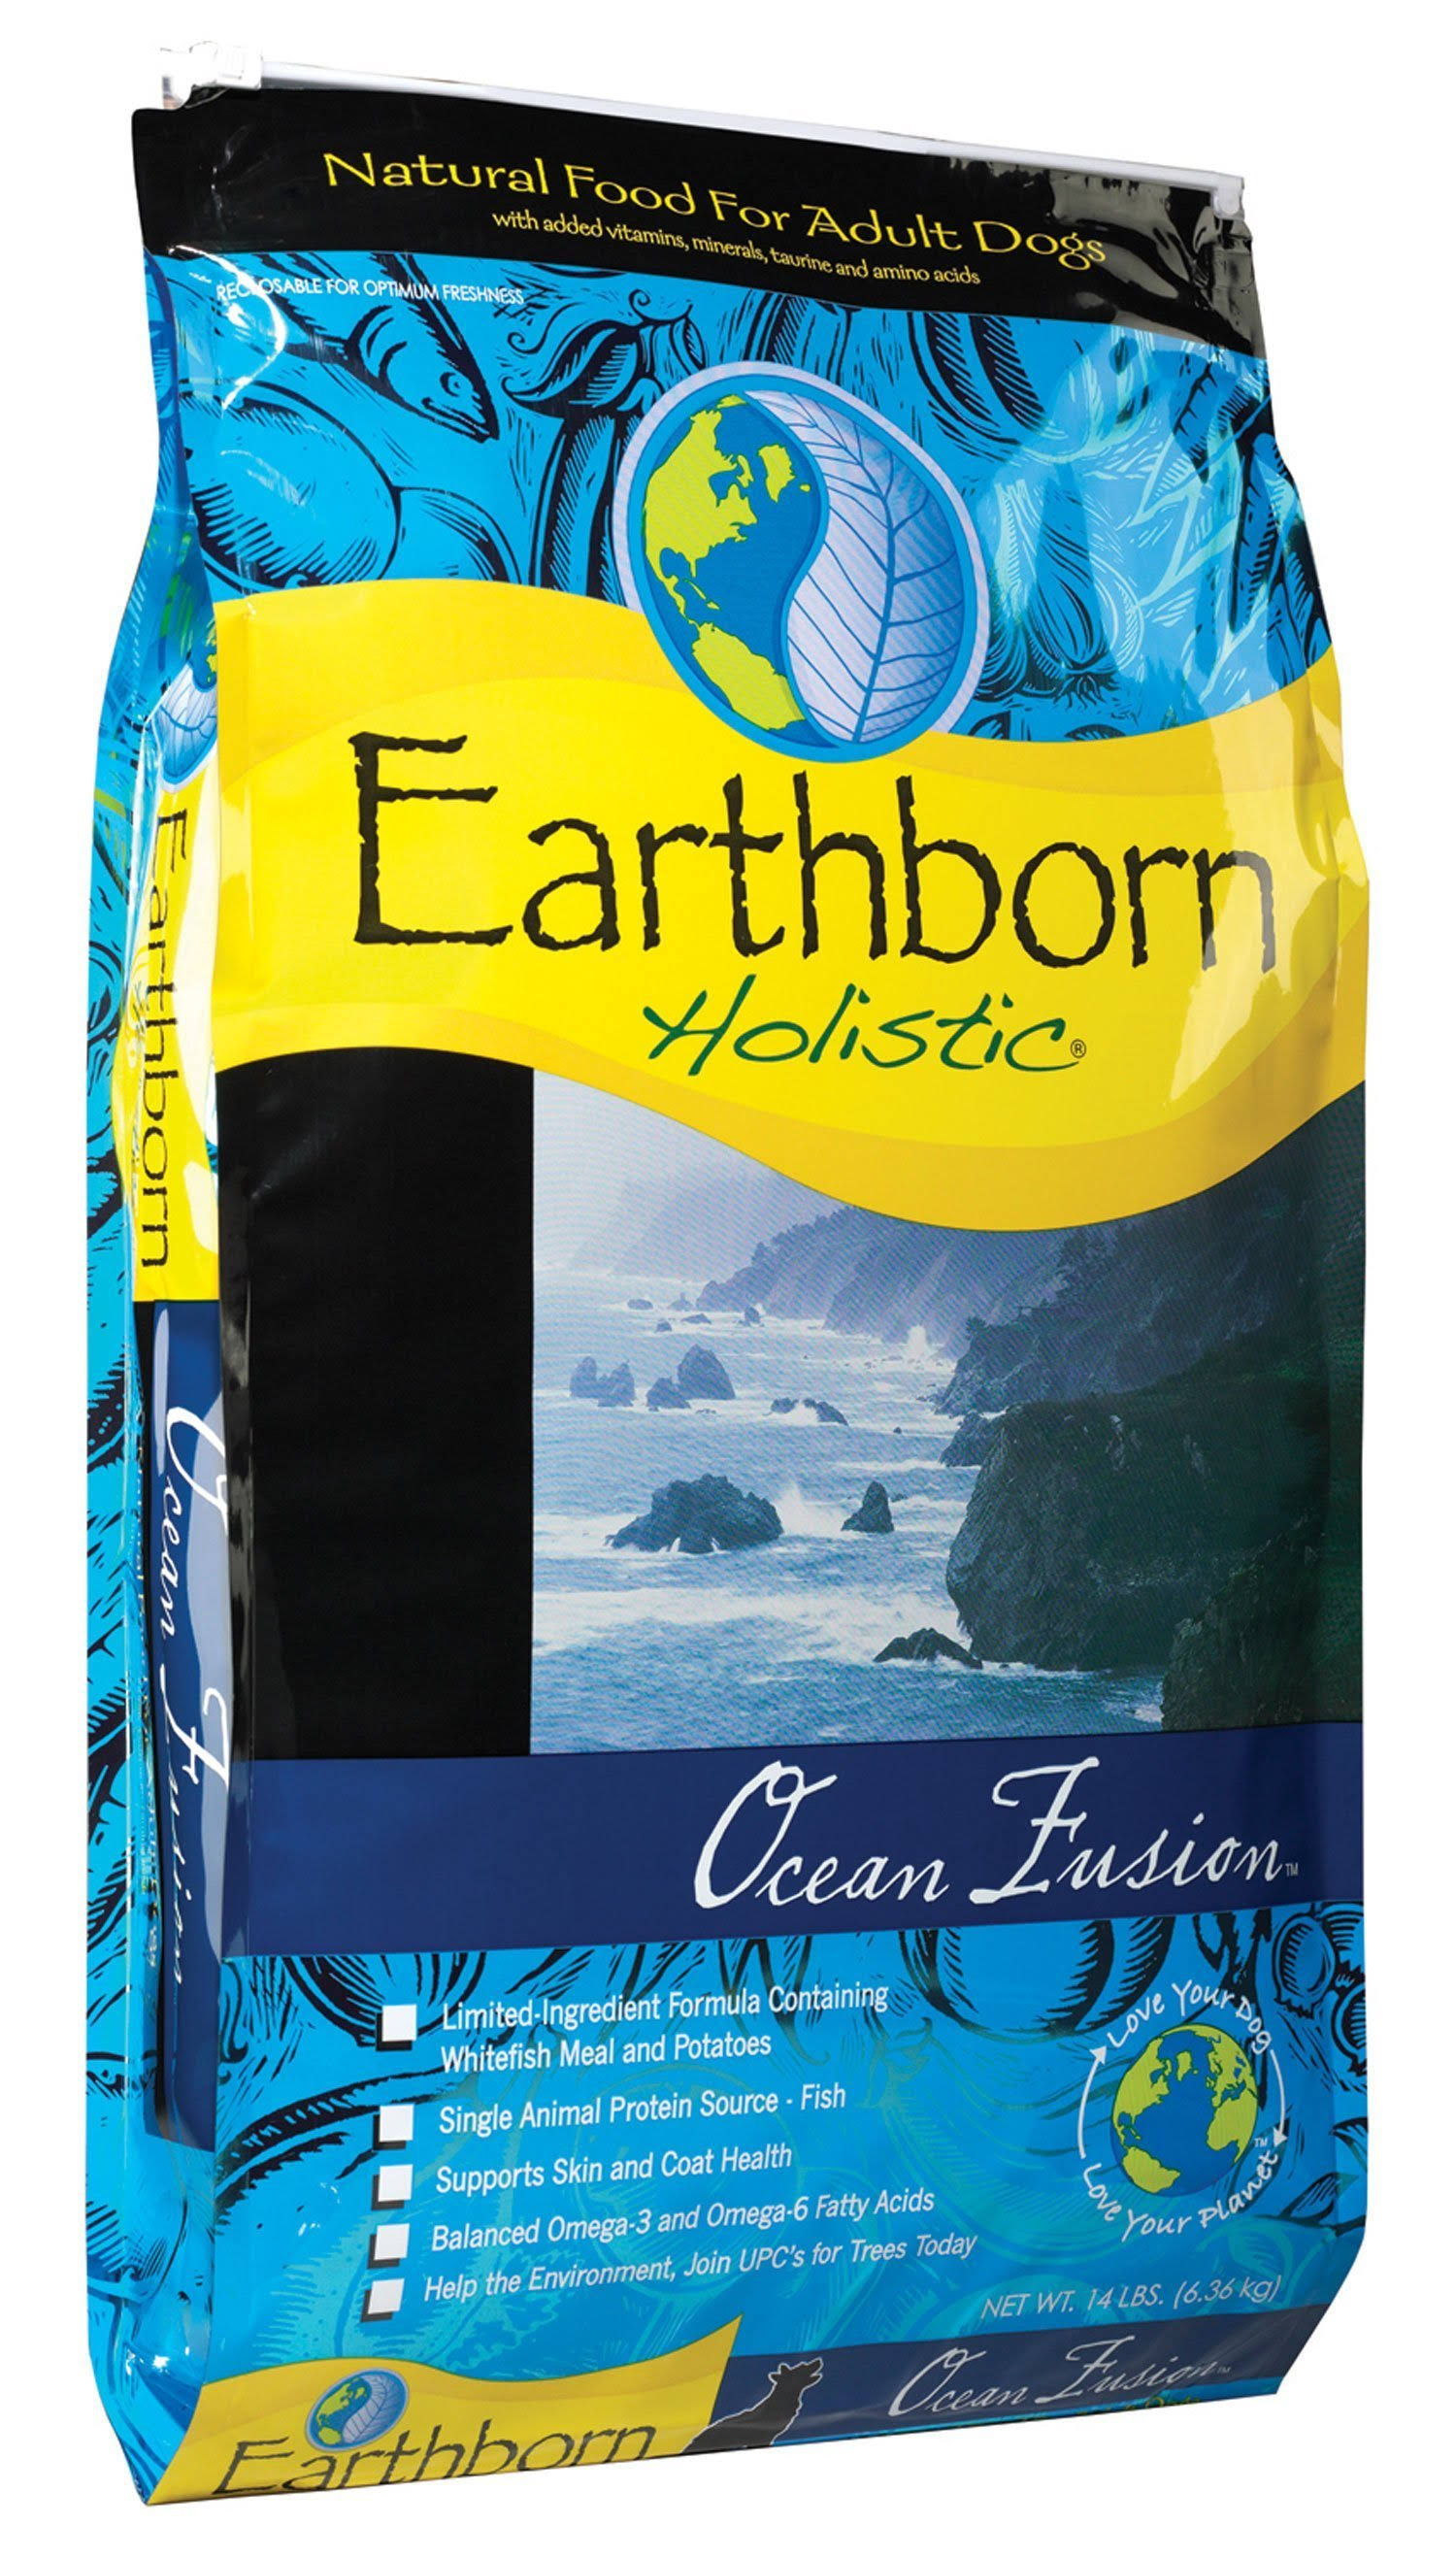 Wells Earthborn Holistic Ocean Fusion Natural Dog Food - Whitefish, 14lbs